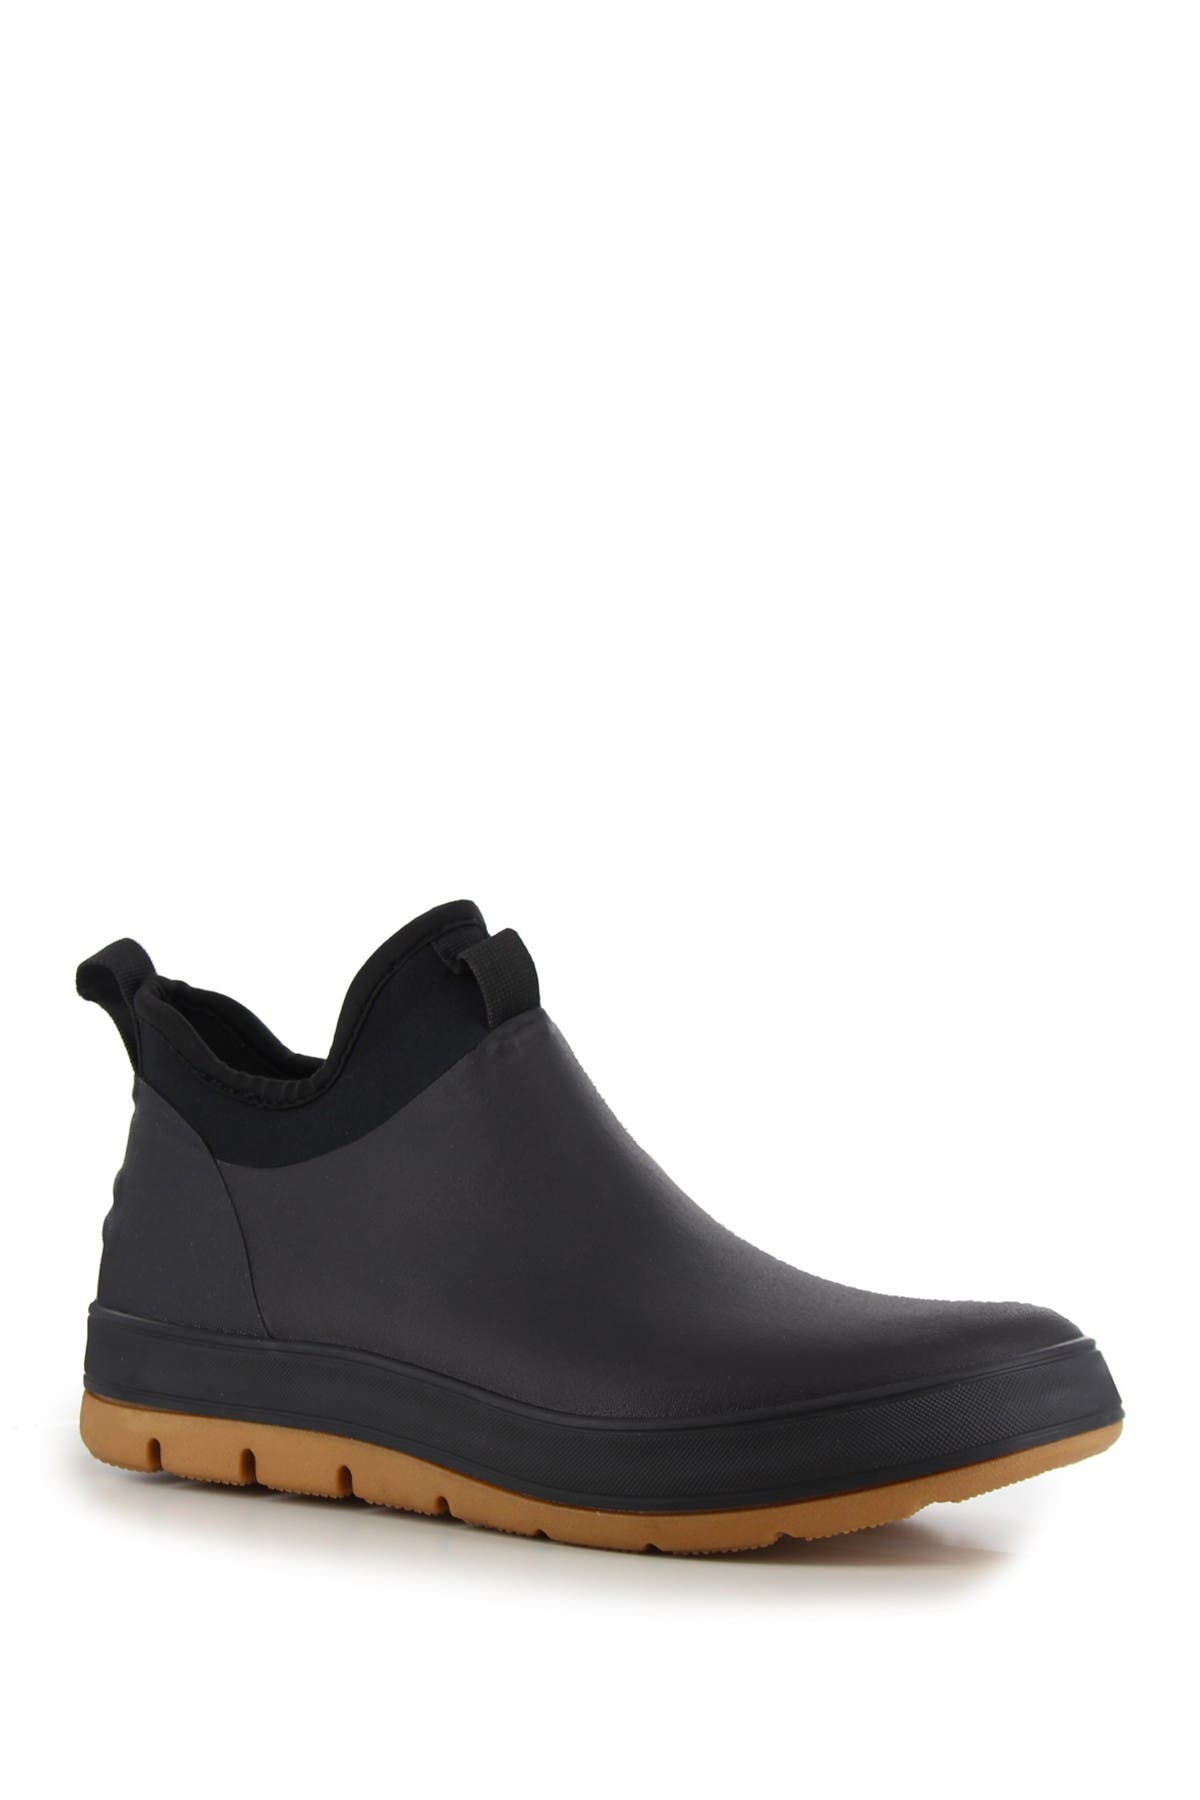 Image of STAHEEKUM High Ankle Rain Boot